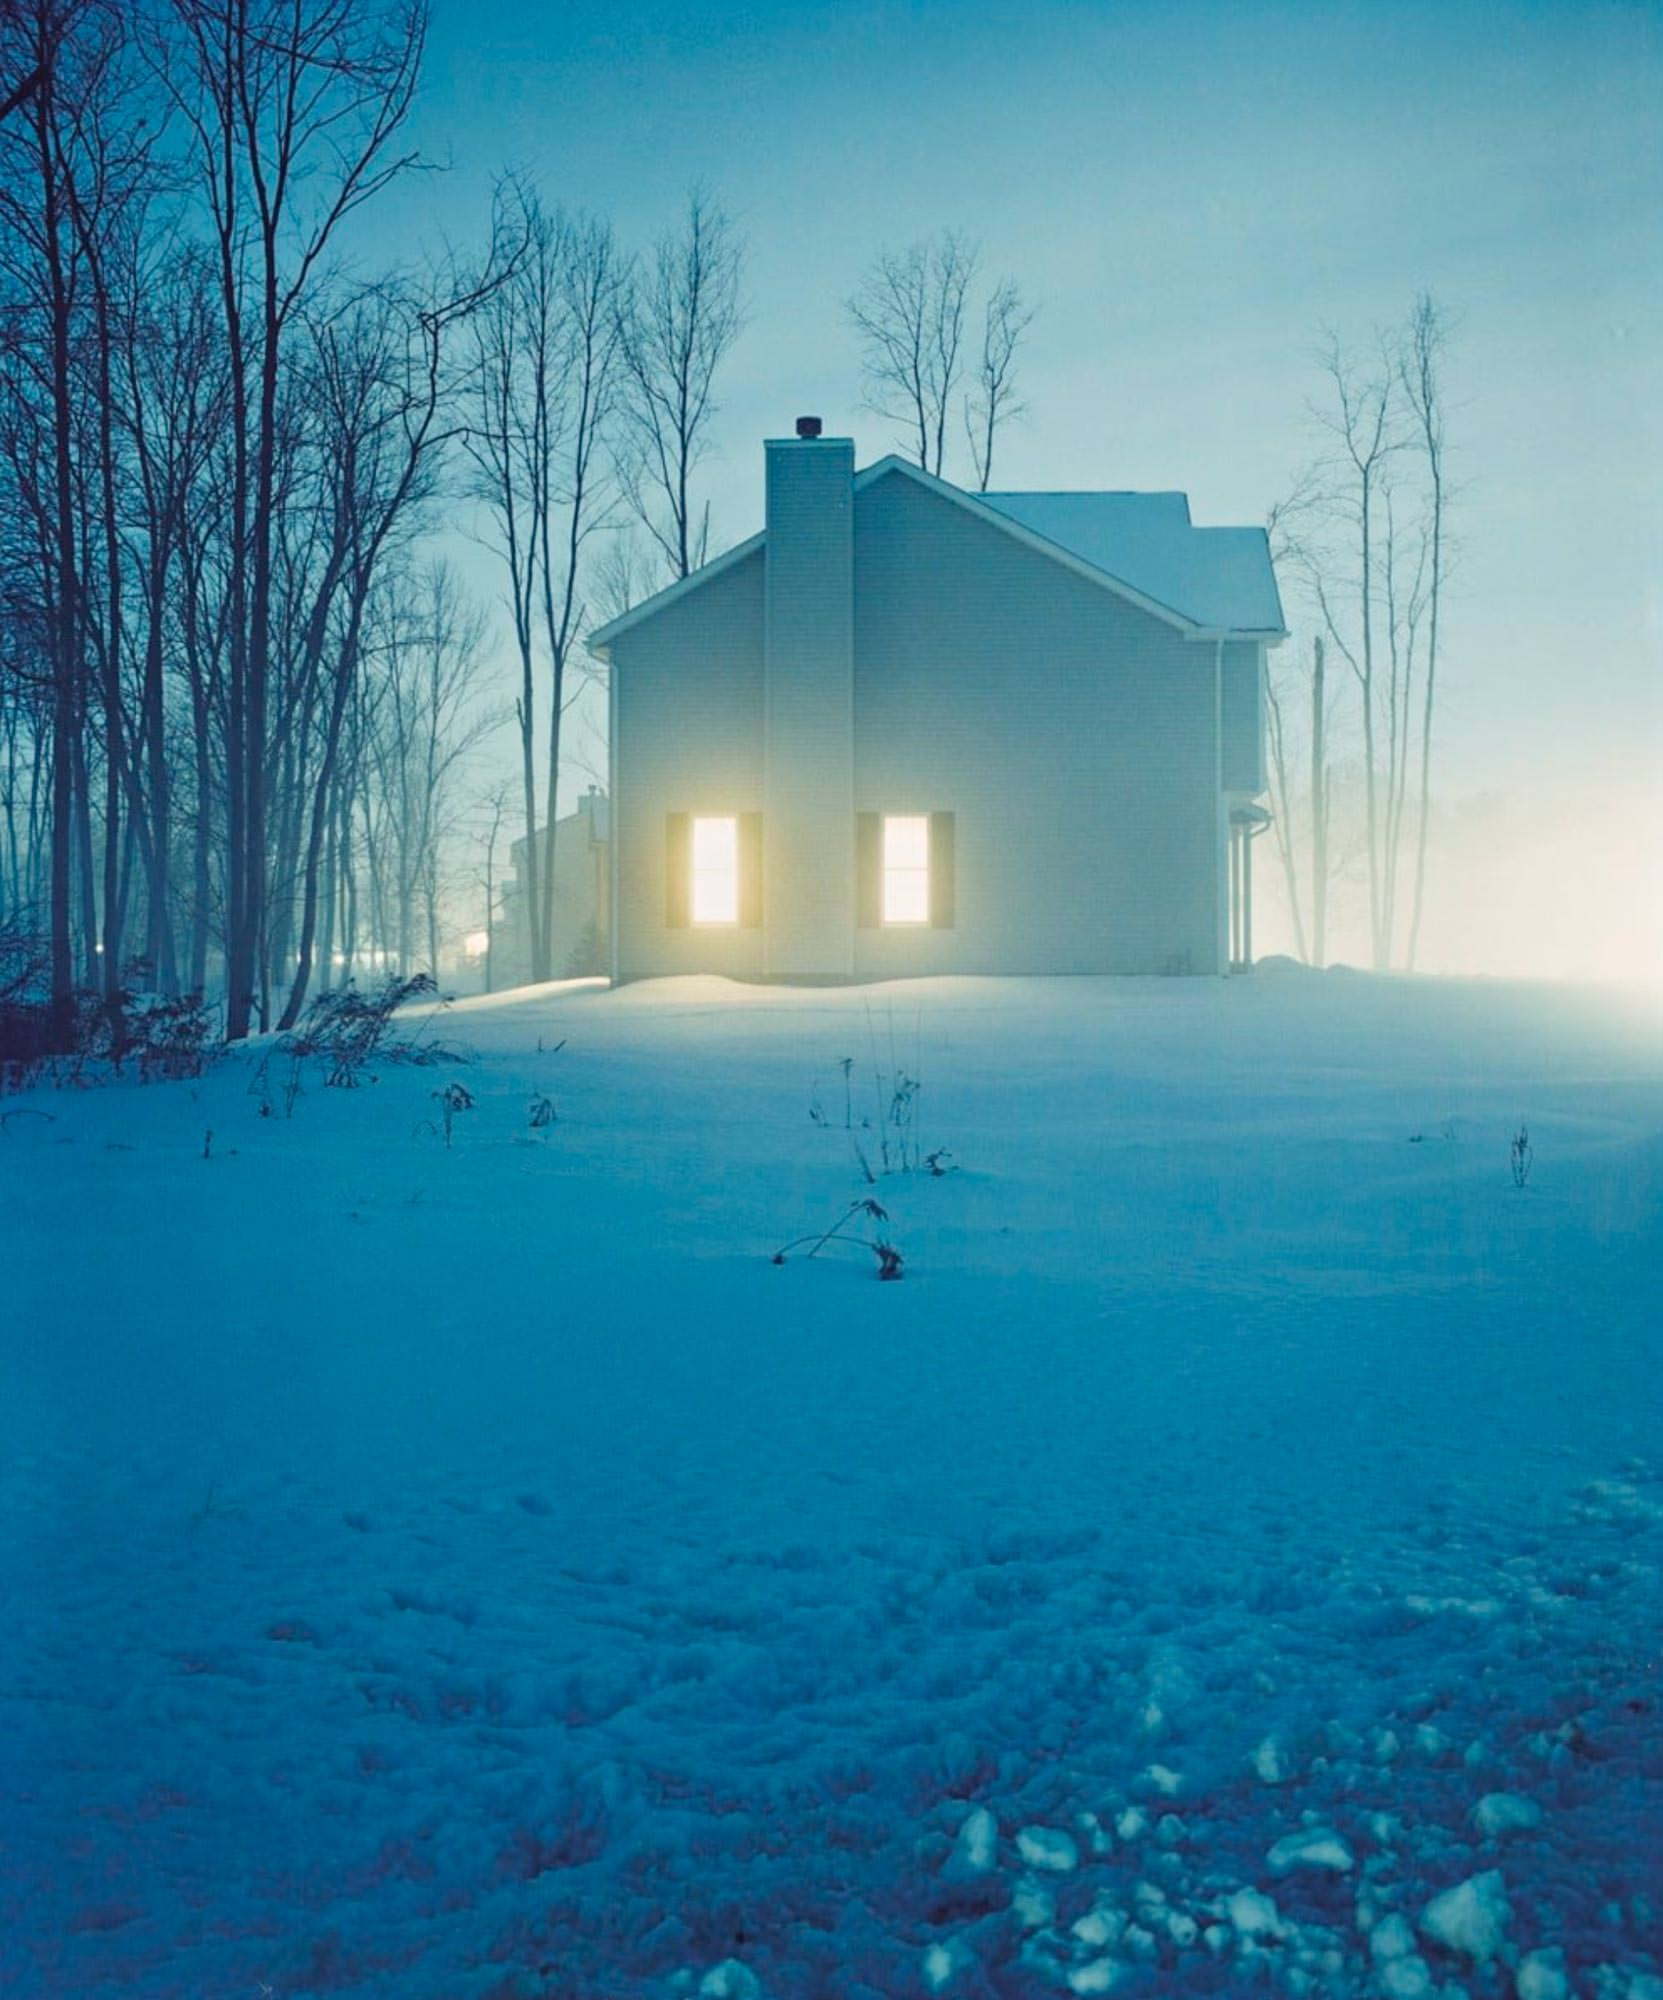 Todd Hido Photographie #2423-A, 1999